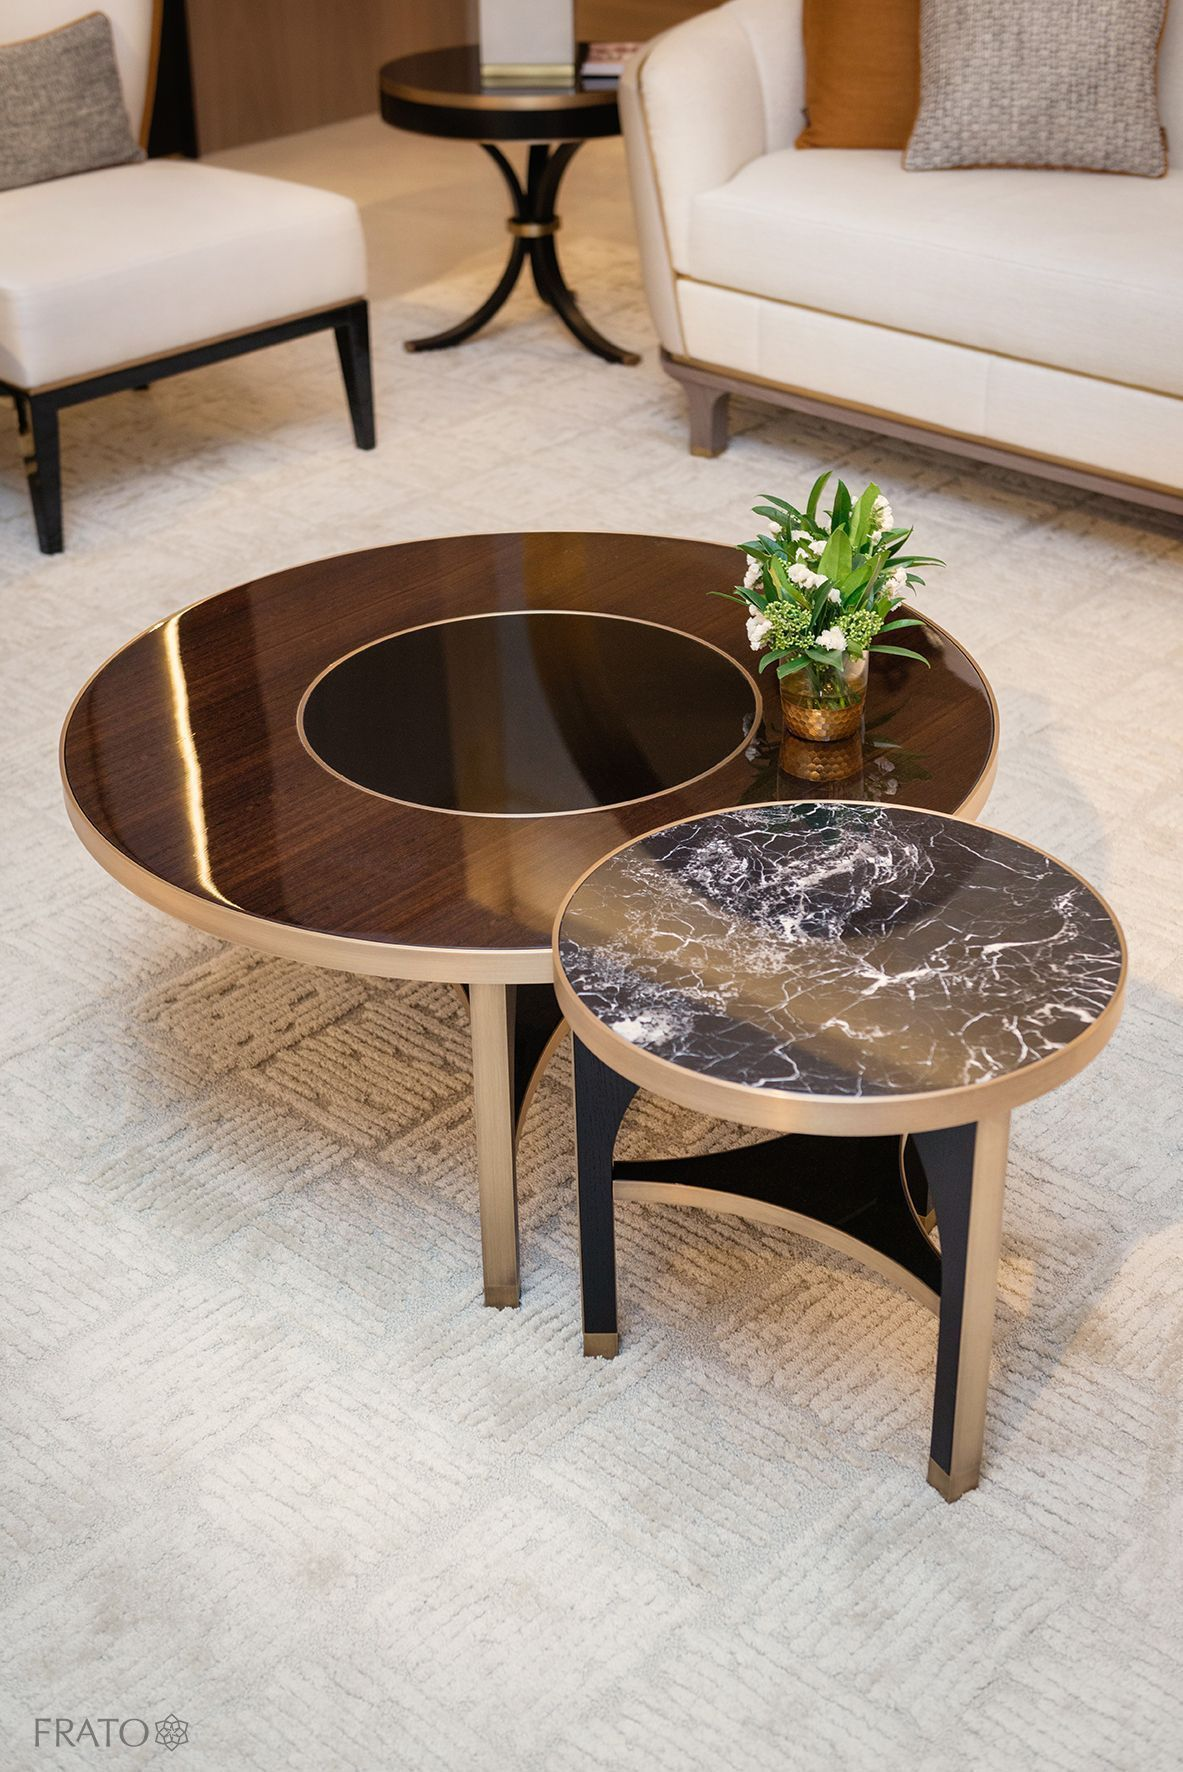 22 Modern Coffee Tables Designs Interesting Best Unique And Classy Center Table Living Room Centre Table Living Room Centre Table Design [ 1772 x 1183 Pixel ]